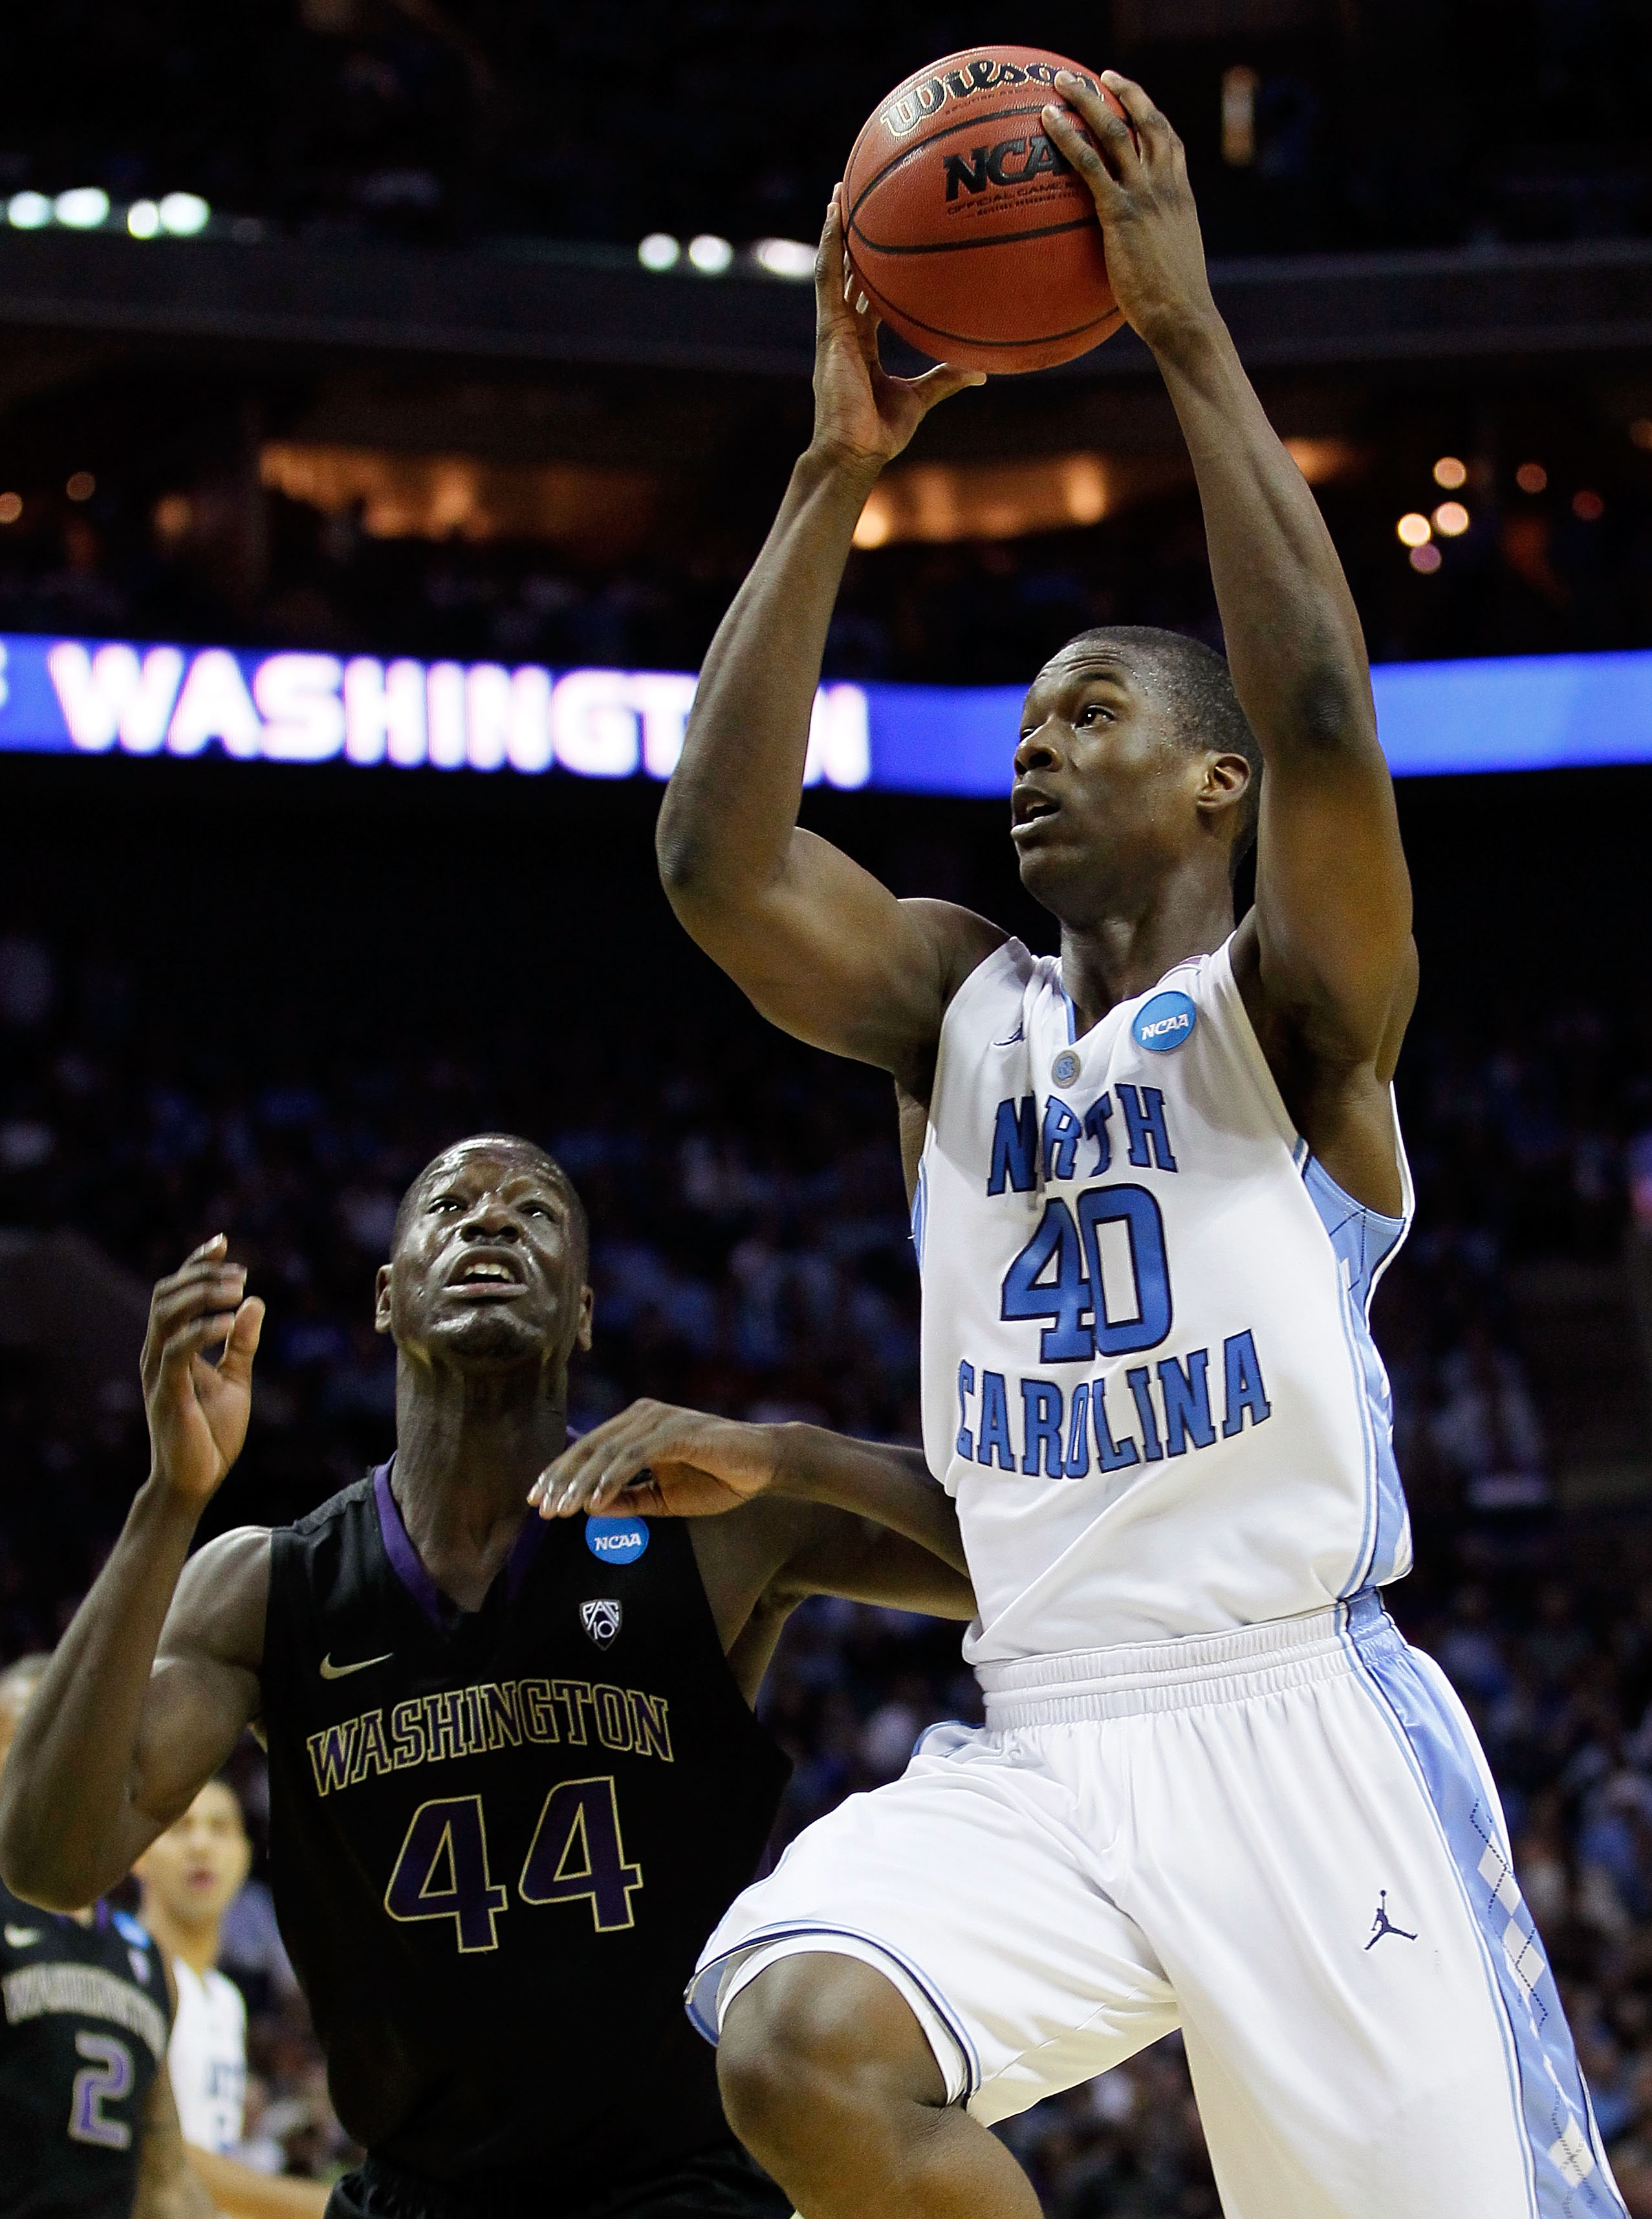 CHARLOTTE, NC - MARCH 20:  Harrison Barnes #40 of the North Carolina Tar Heels goes up for a shot against Darnell Gant #44 of the Washington Huskies in the second half during the third round of the 2011 NCAA men's basketball tournament at Time Warner Cabl